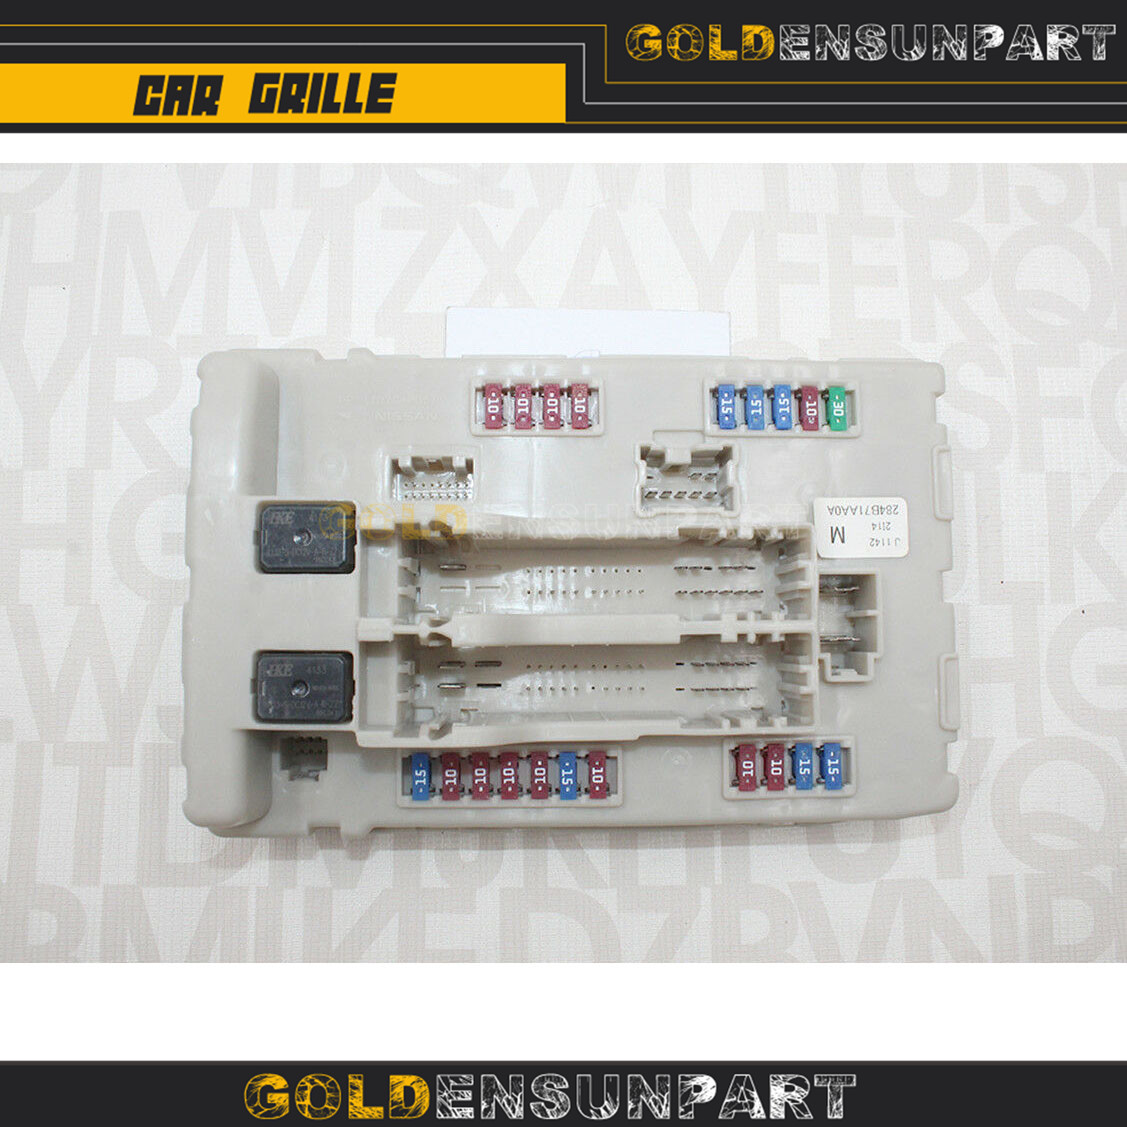 284B7-1AA0A 284B71AA0A New Engine Control Unit Fuse Box for Nissan Altima Murano Maxima IPDM BCM 2008 2009 2010 image